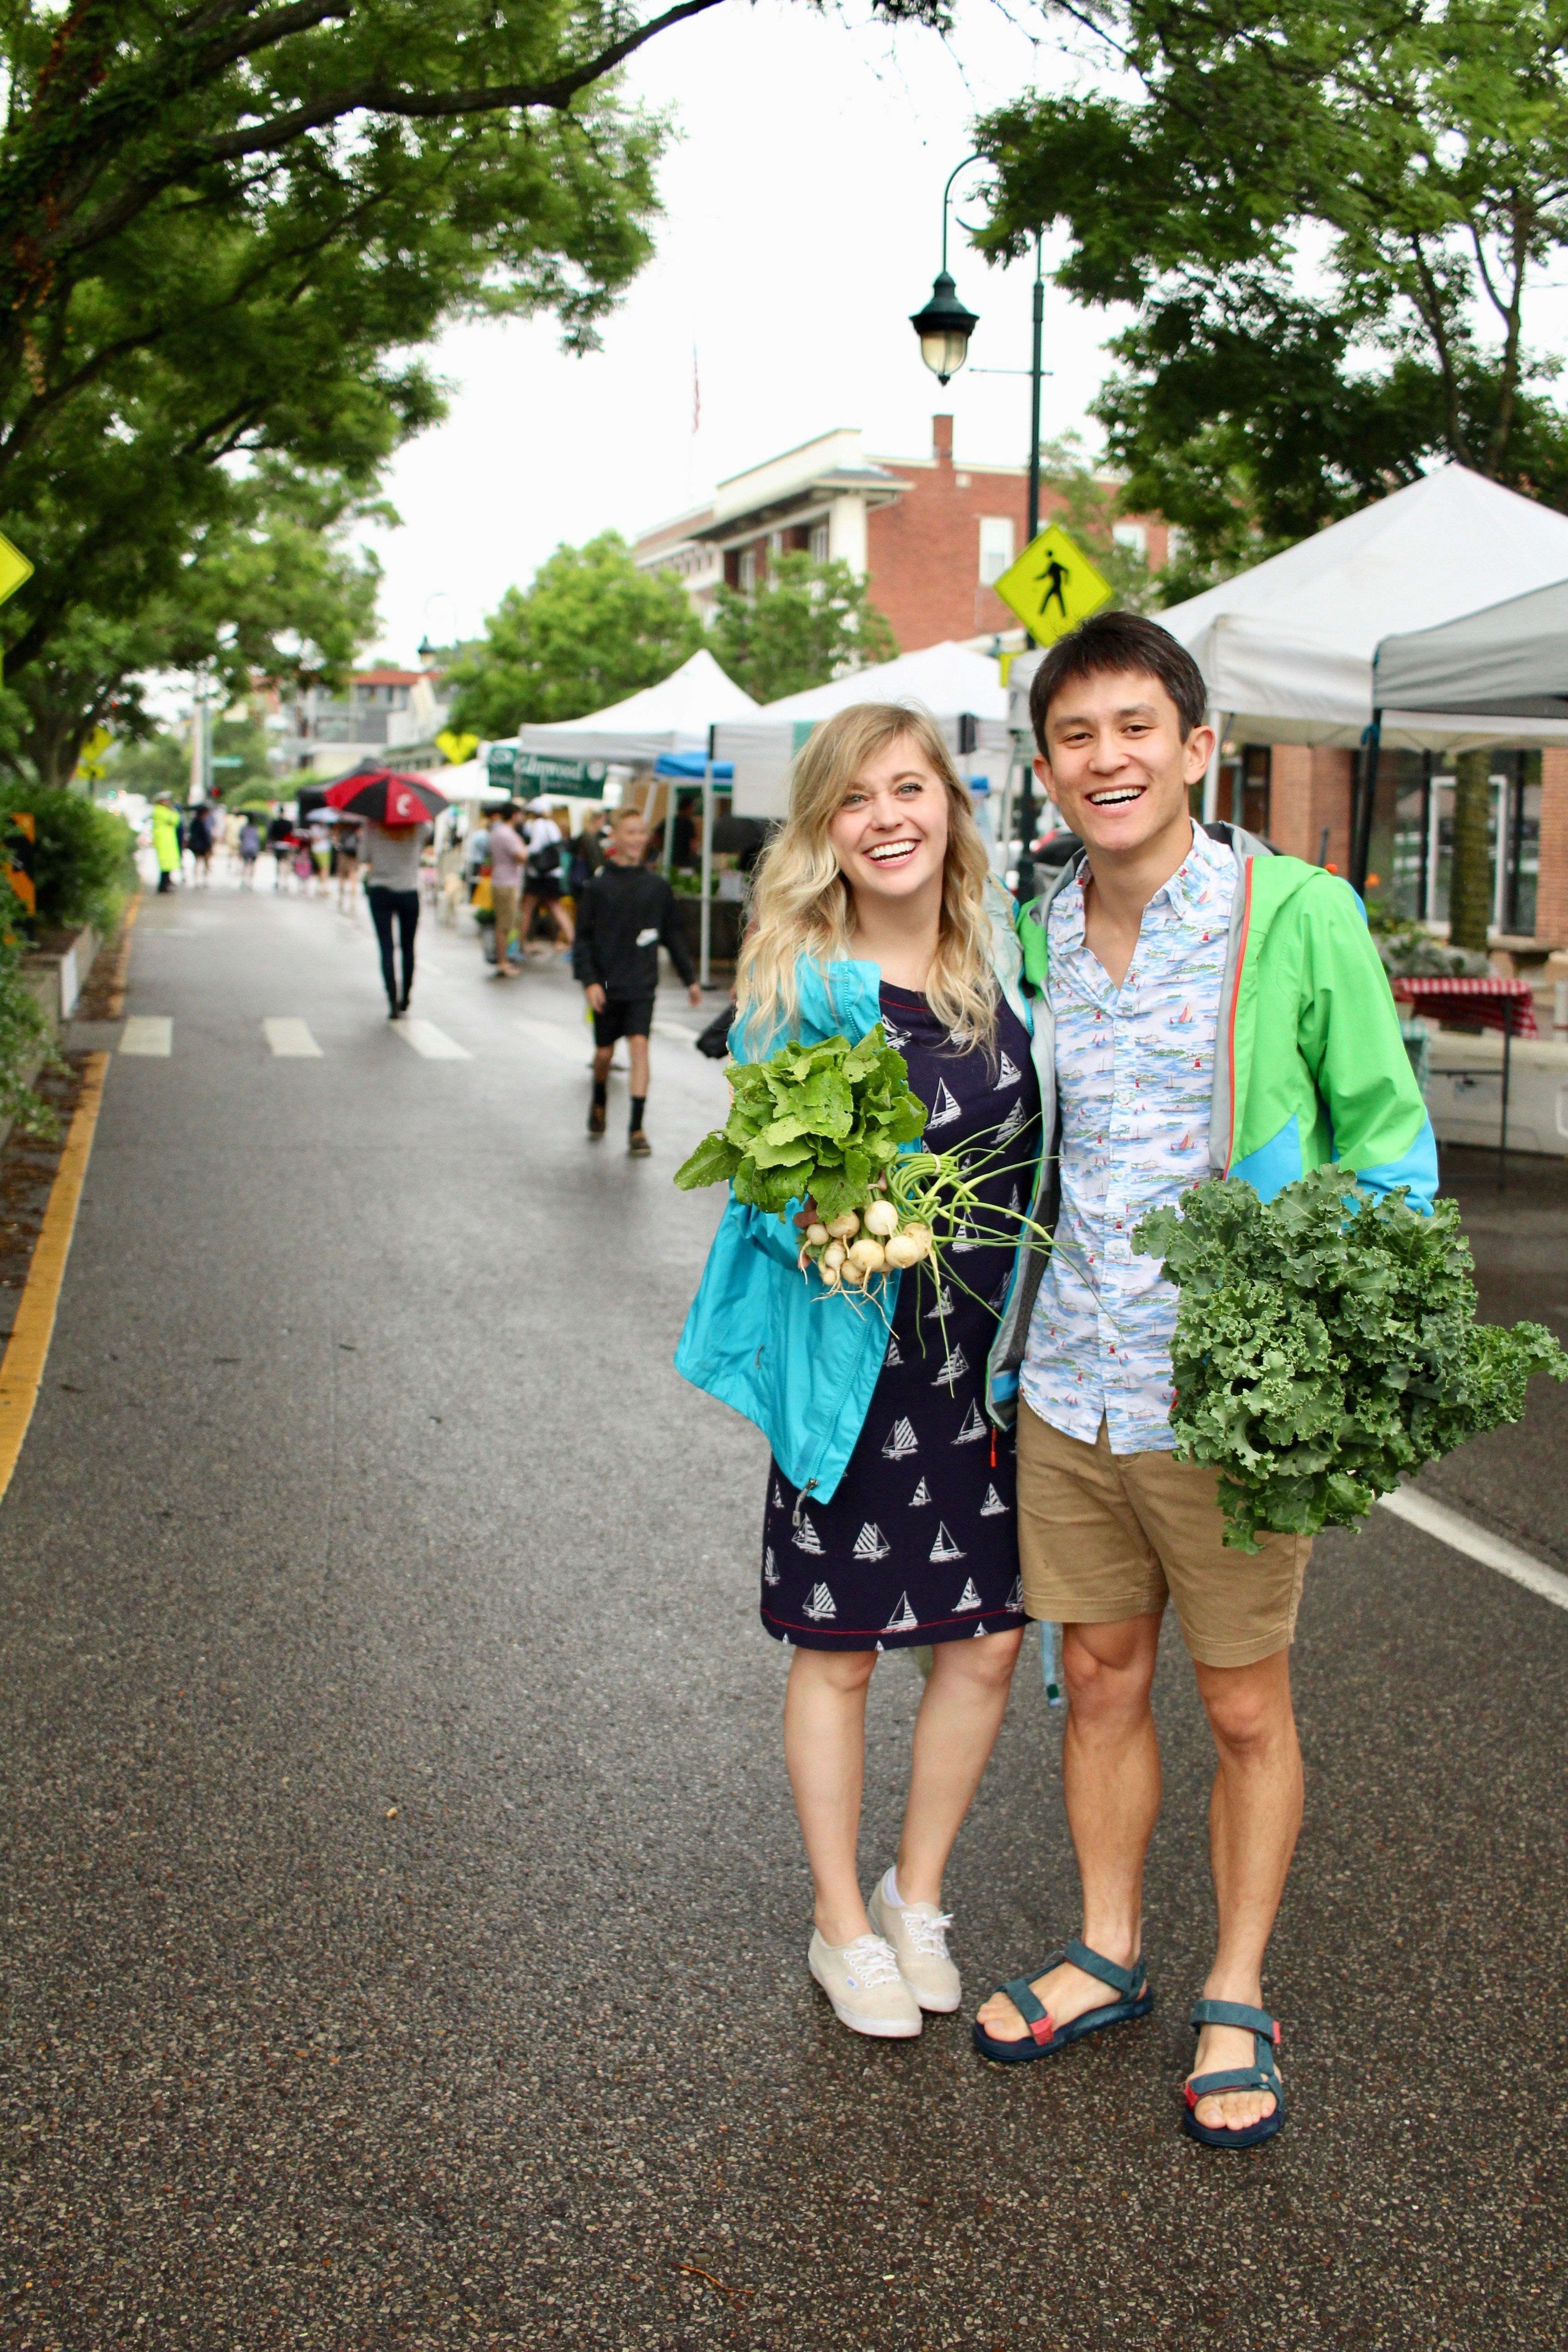 Chris and chelsea holding veggies at hyde park farmers market